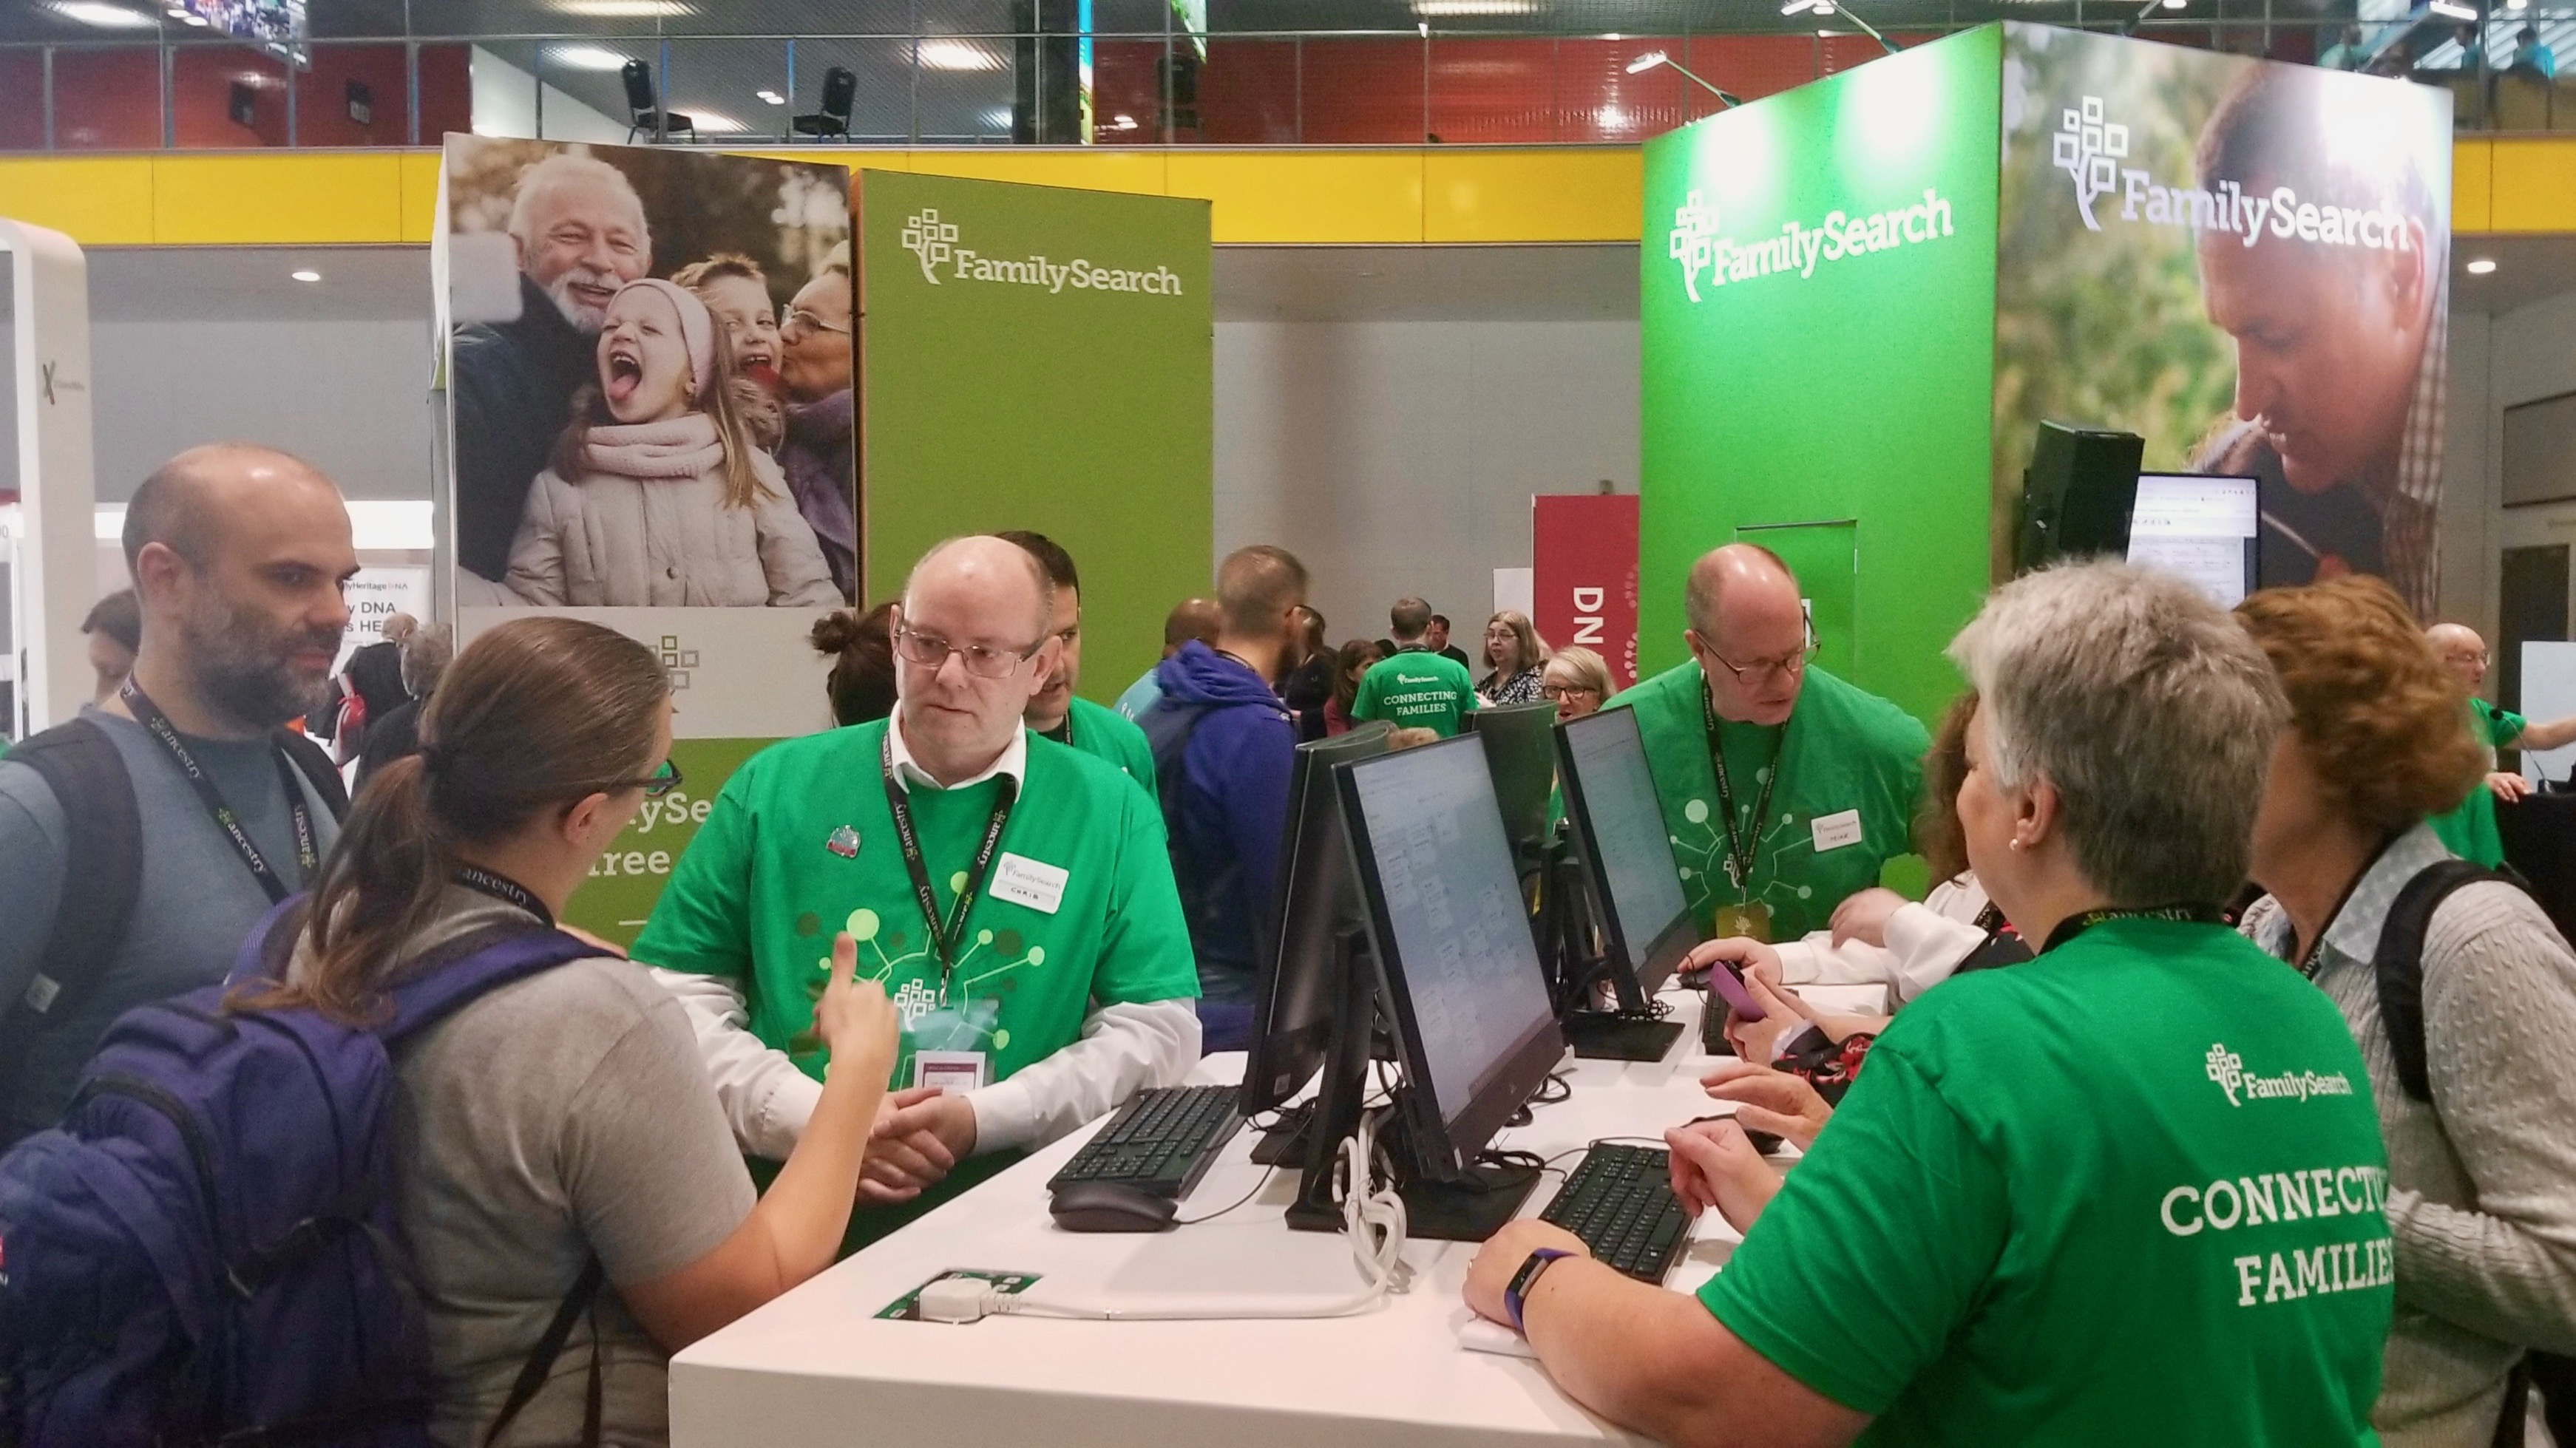 RootsTech London attendees and FamilySearch assistants gather at the FamilySearch booth in the London ExCel exhibition hall on Thursday, Oct. 24. 2019.